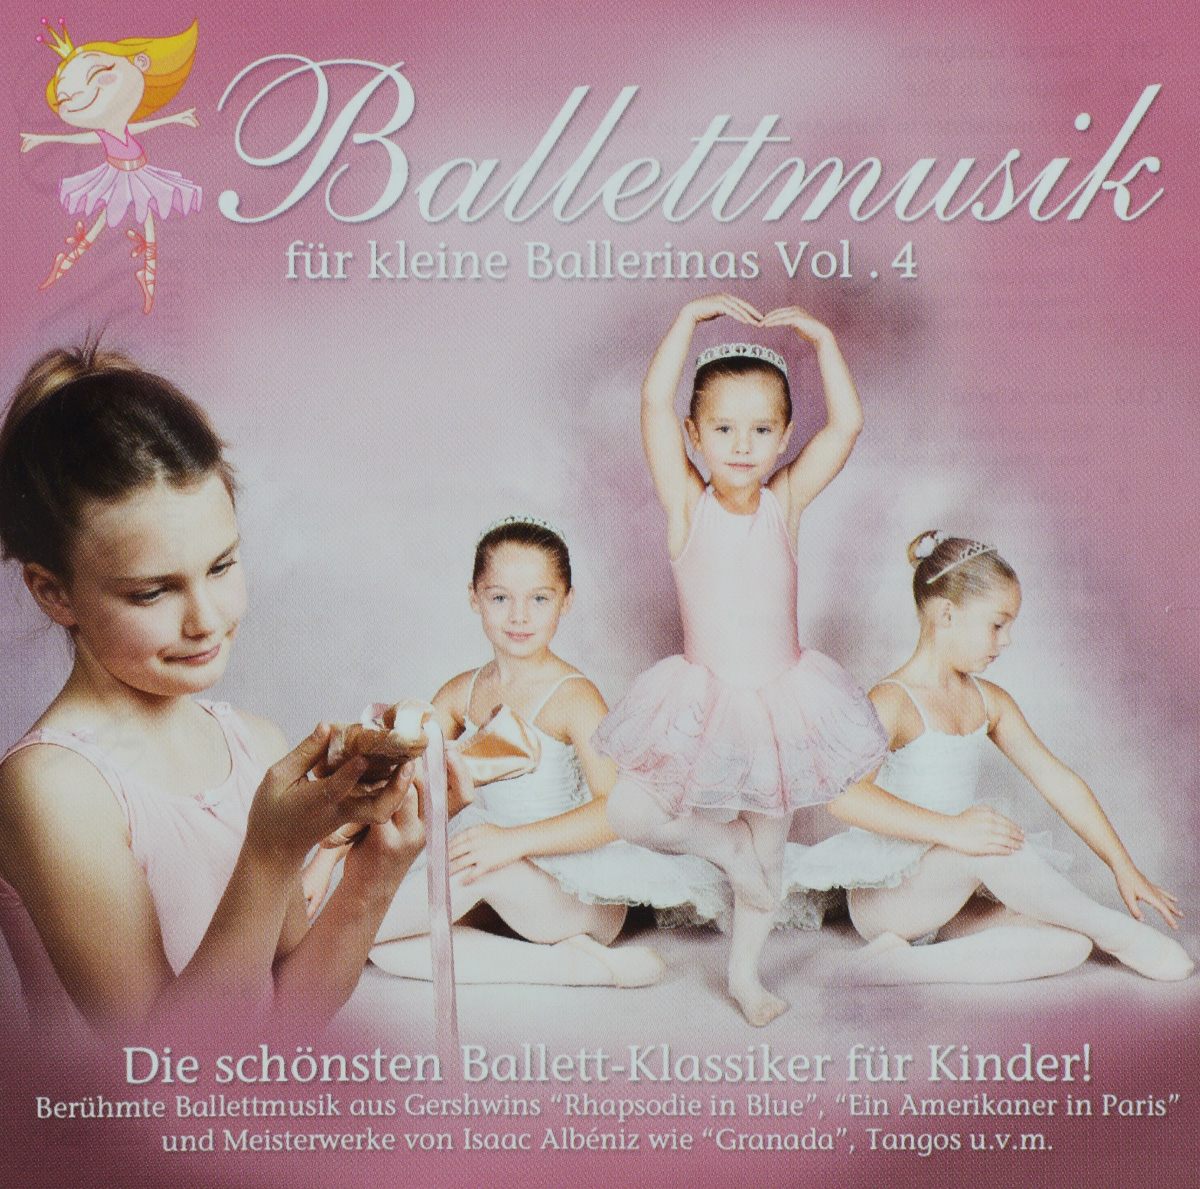 купить Philharmonia Slavonica Ballettmusik Fur Kleine Ballerinas. Vol. 4 (2 CD) по цене 1179 рублей